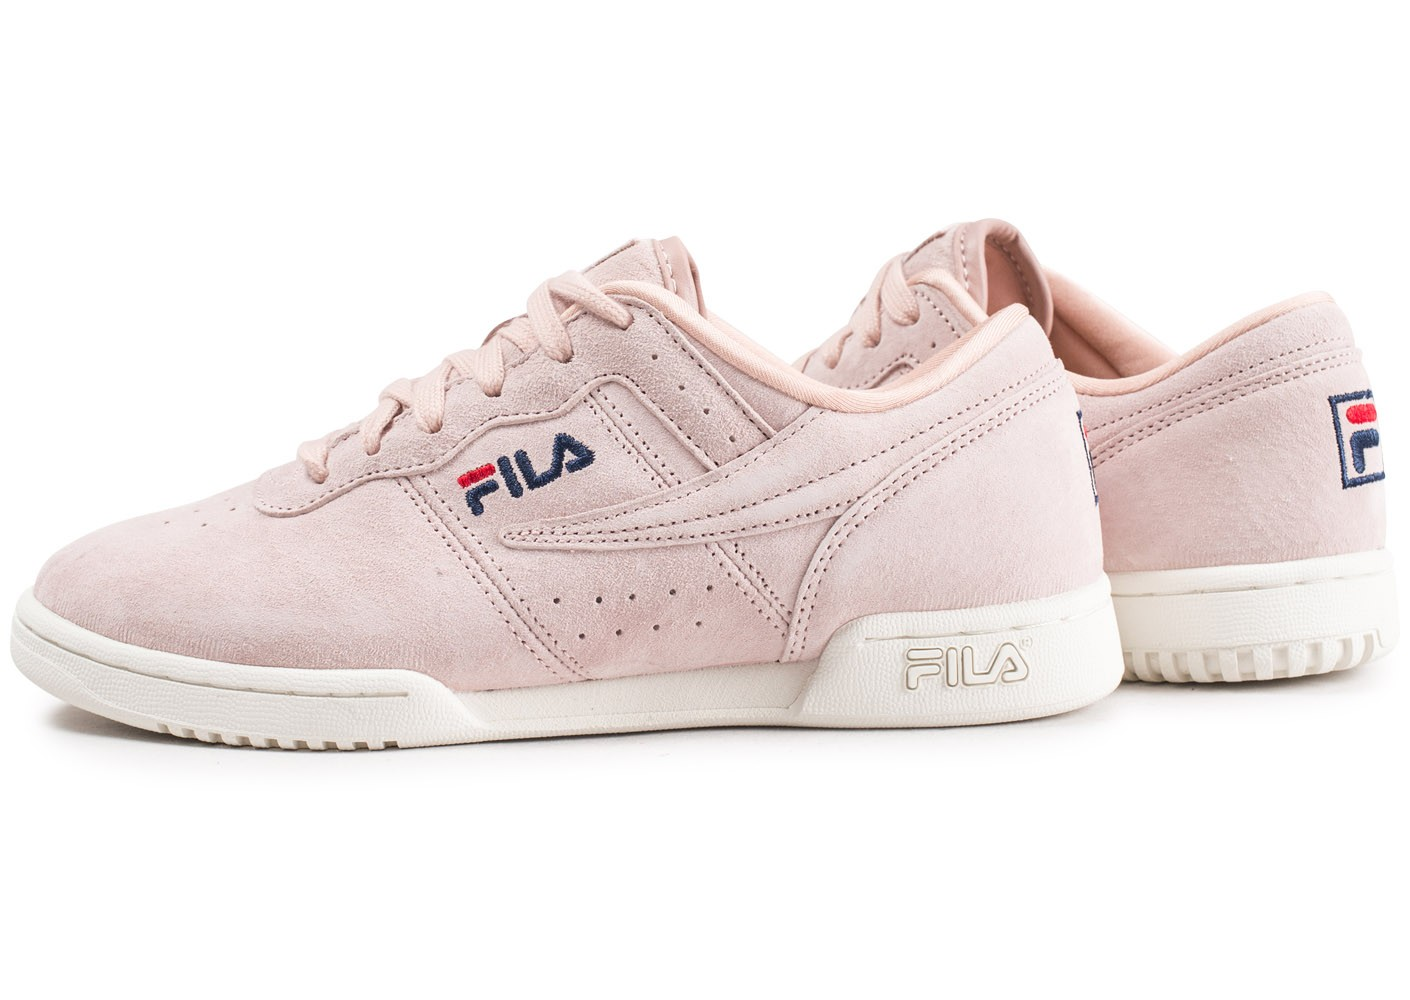 Fitness Original Femme Lila Chausport Fila Chaussures Baskets rBWxodCe